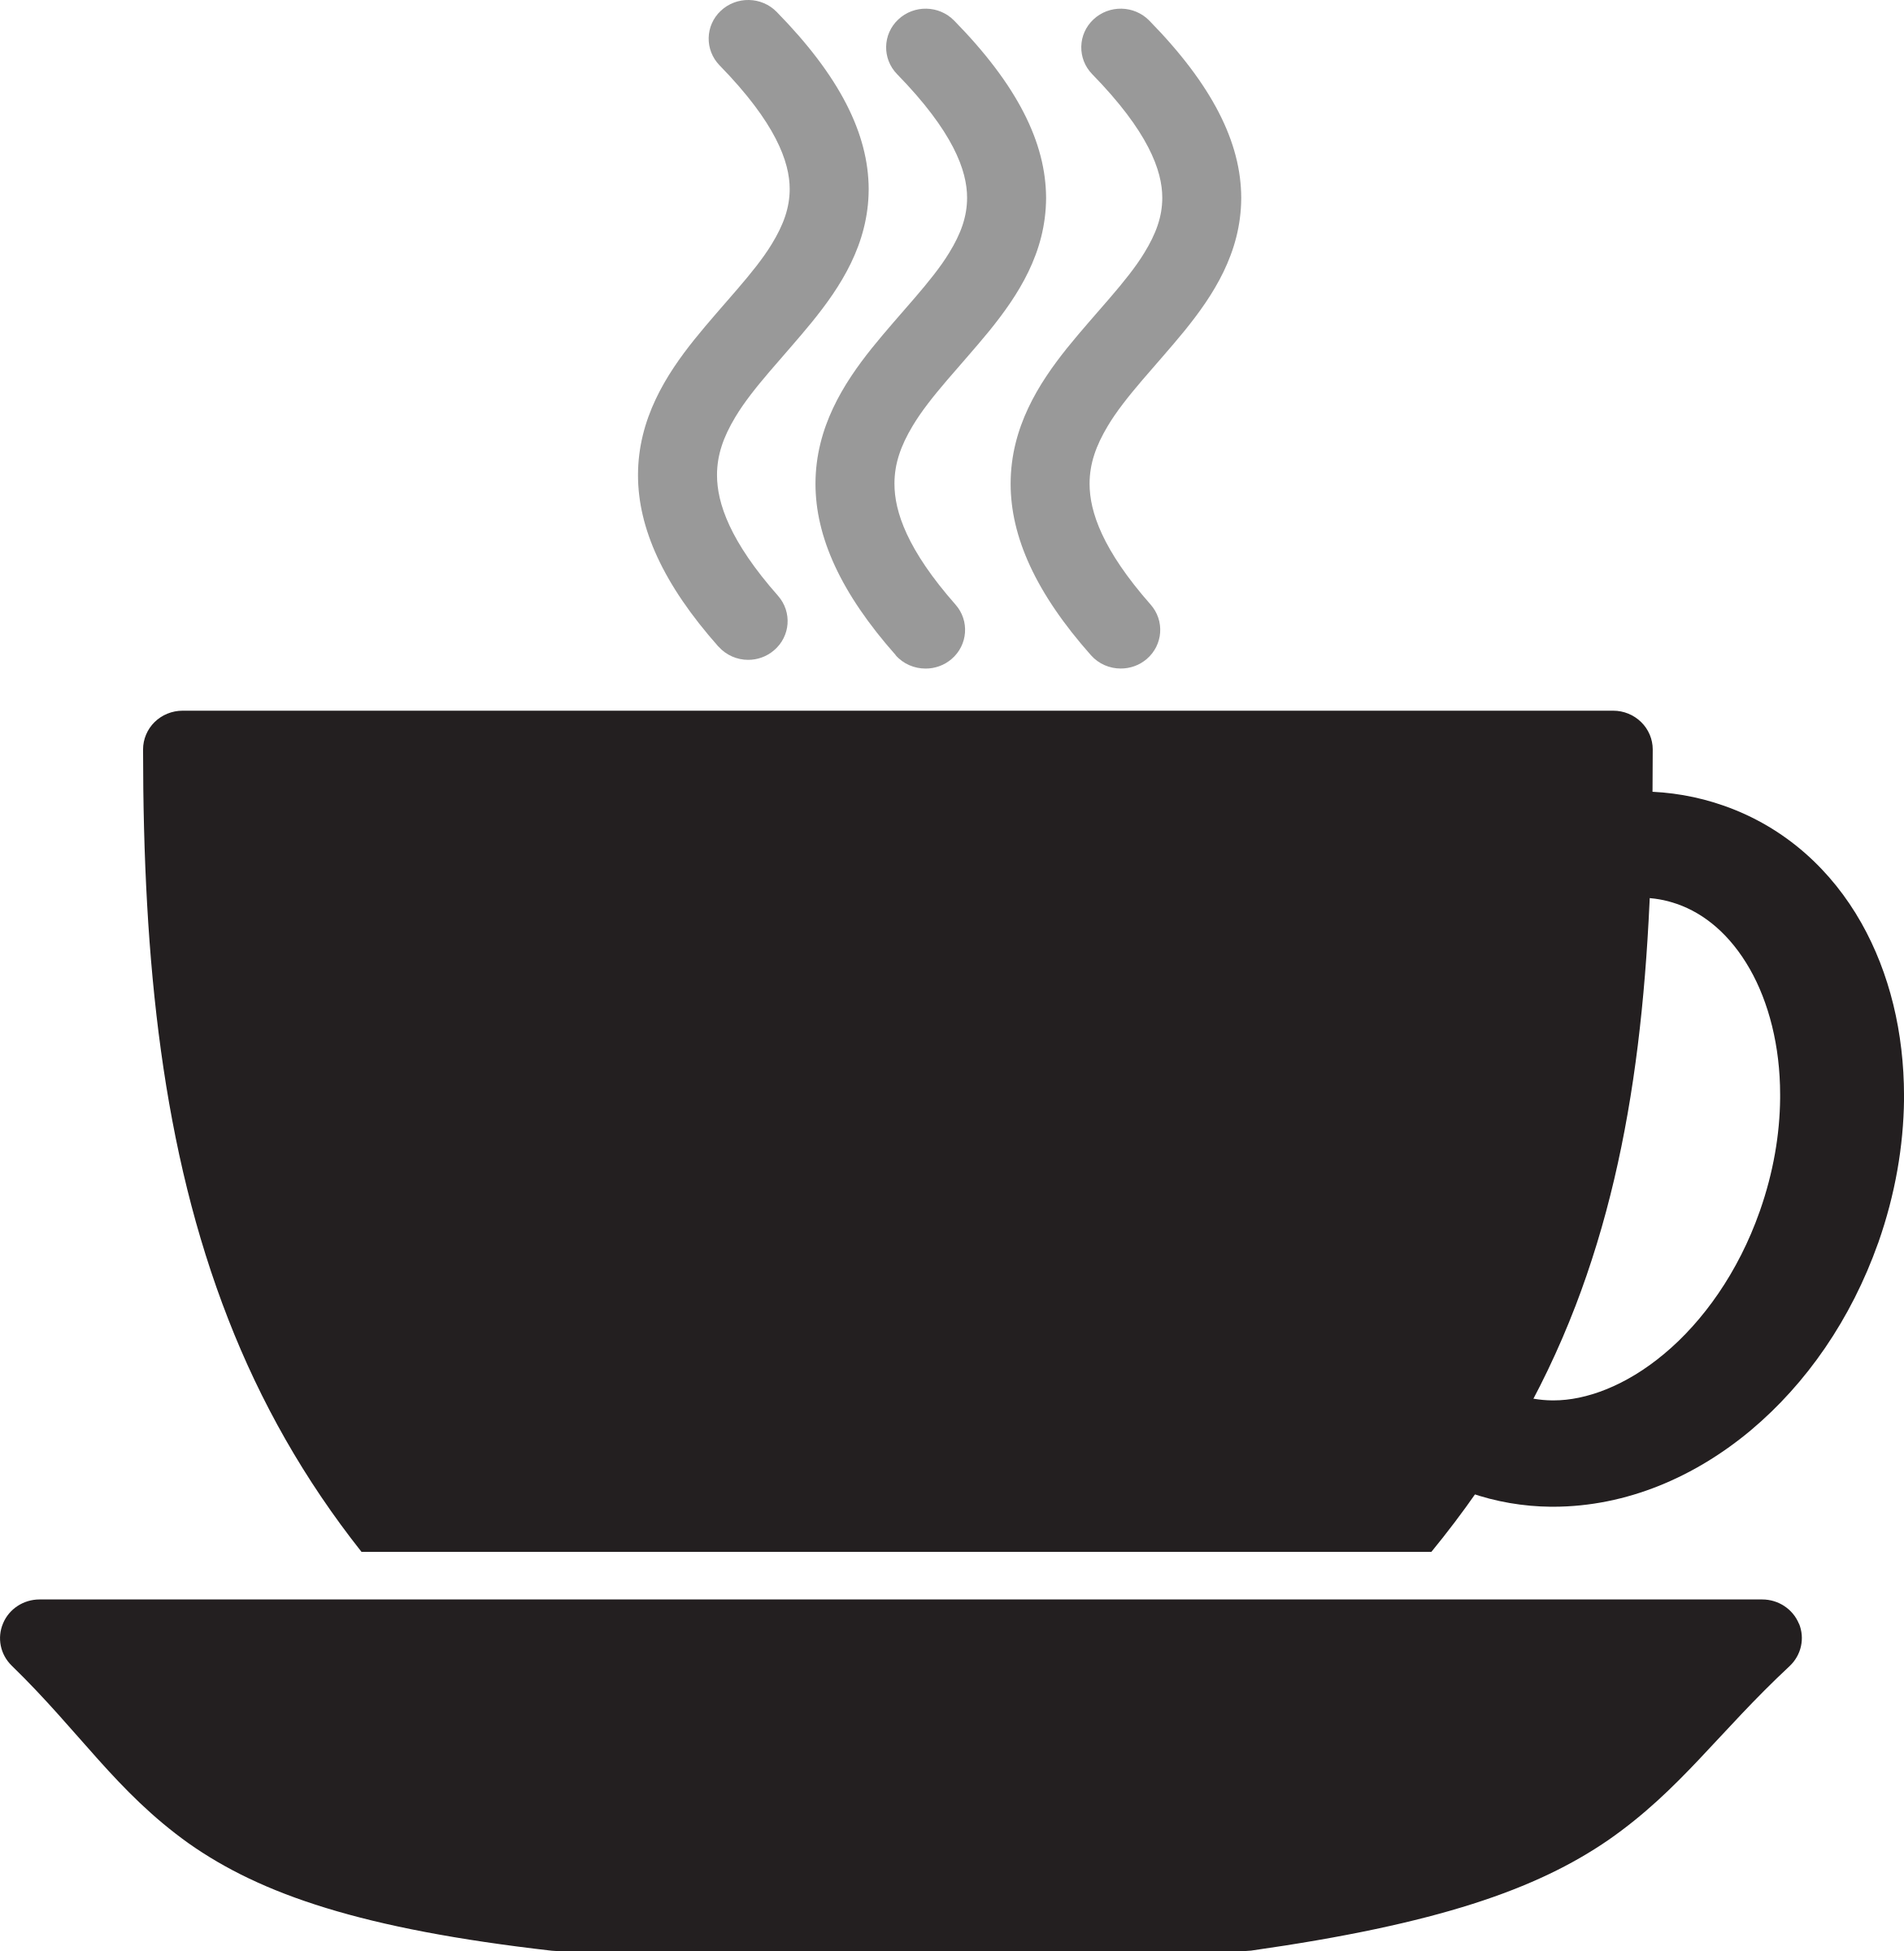 Coffee cup png vector. Kitchen icon icons free